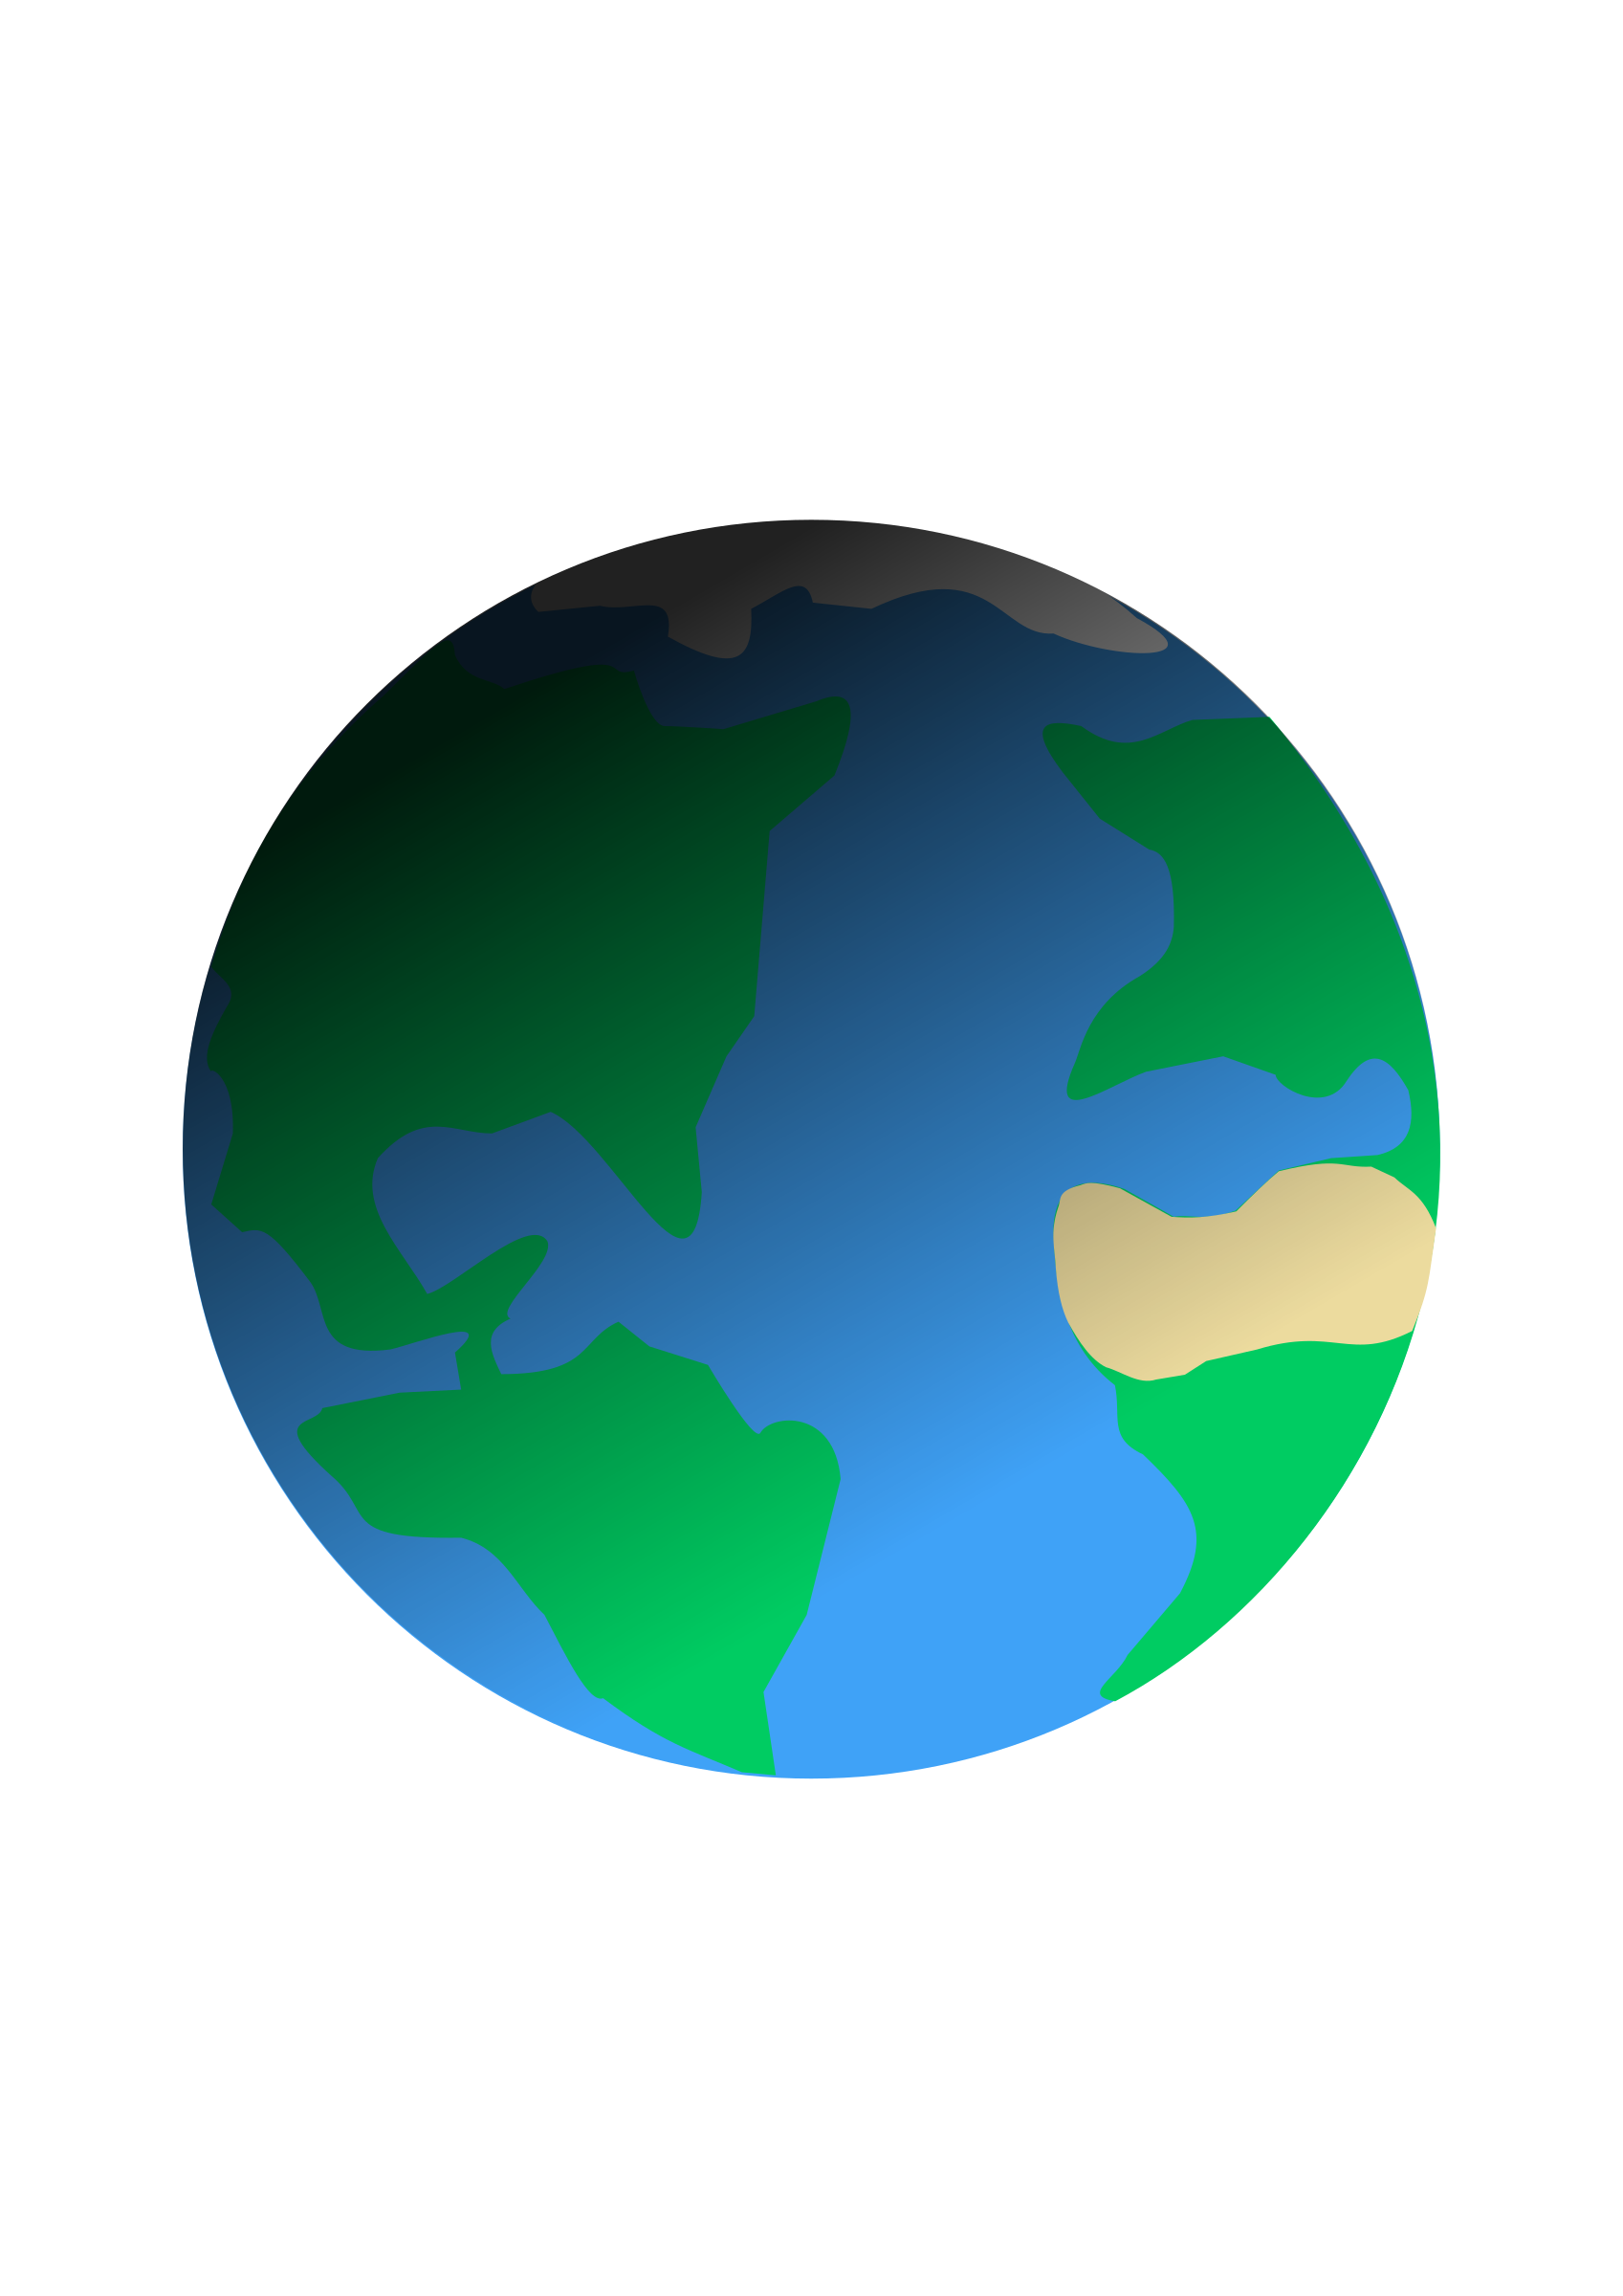 Earth planet big image. Planets clipart tierra